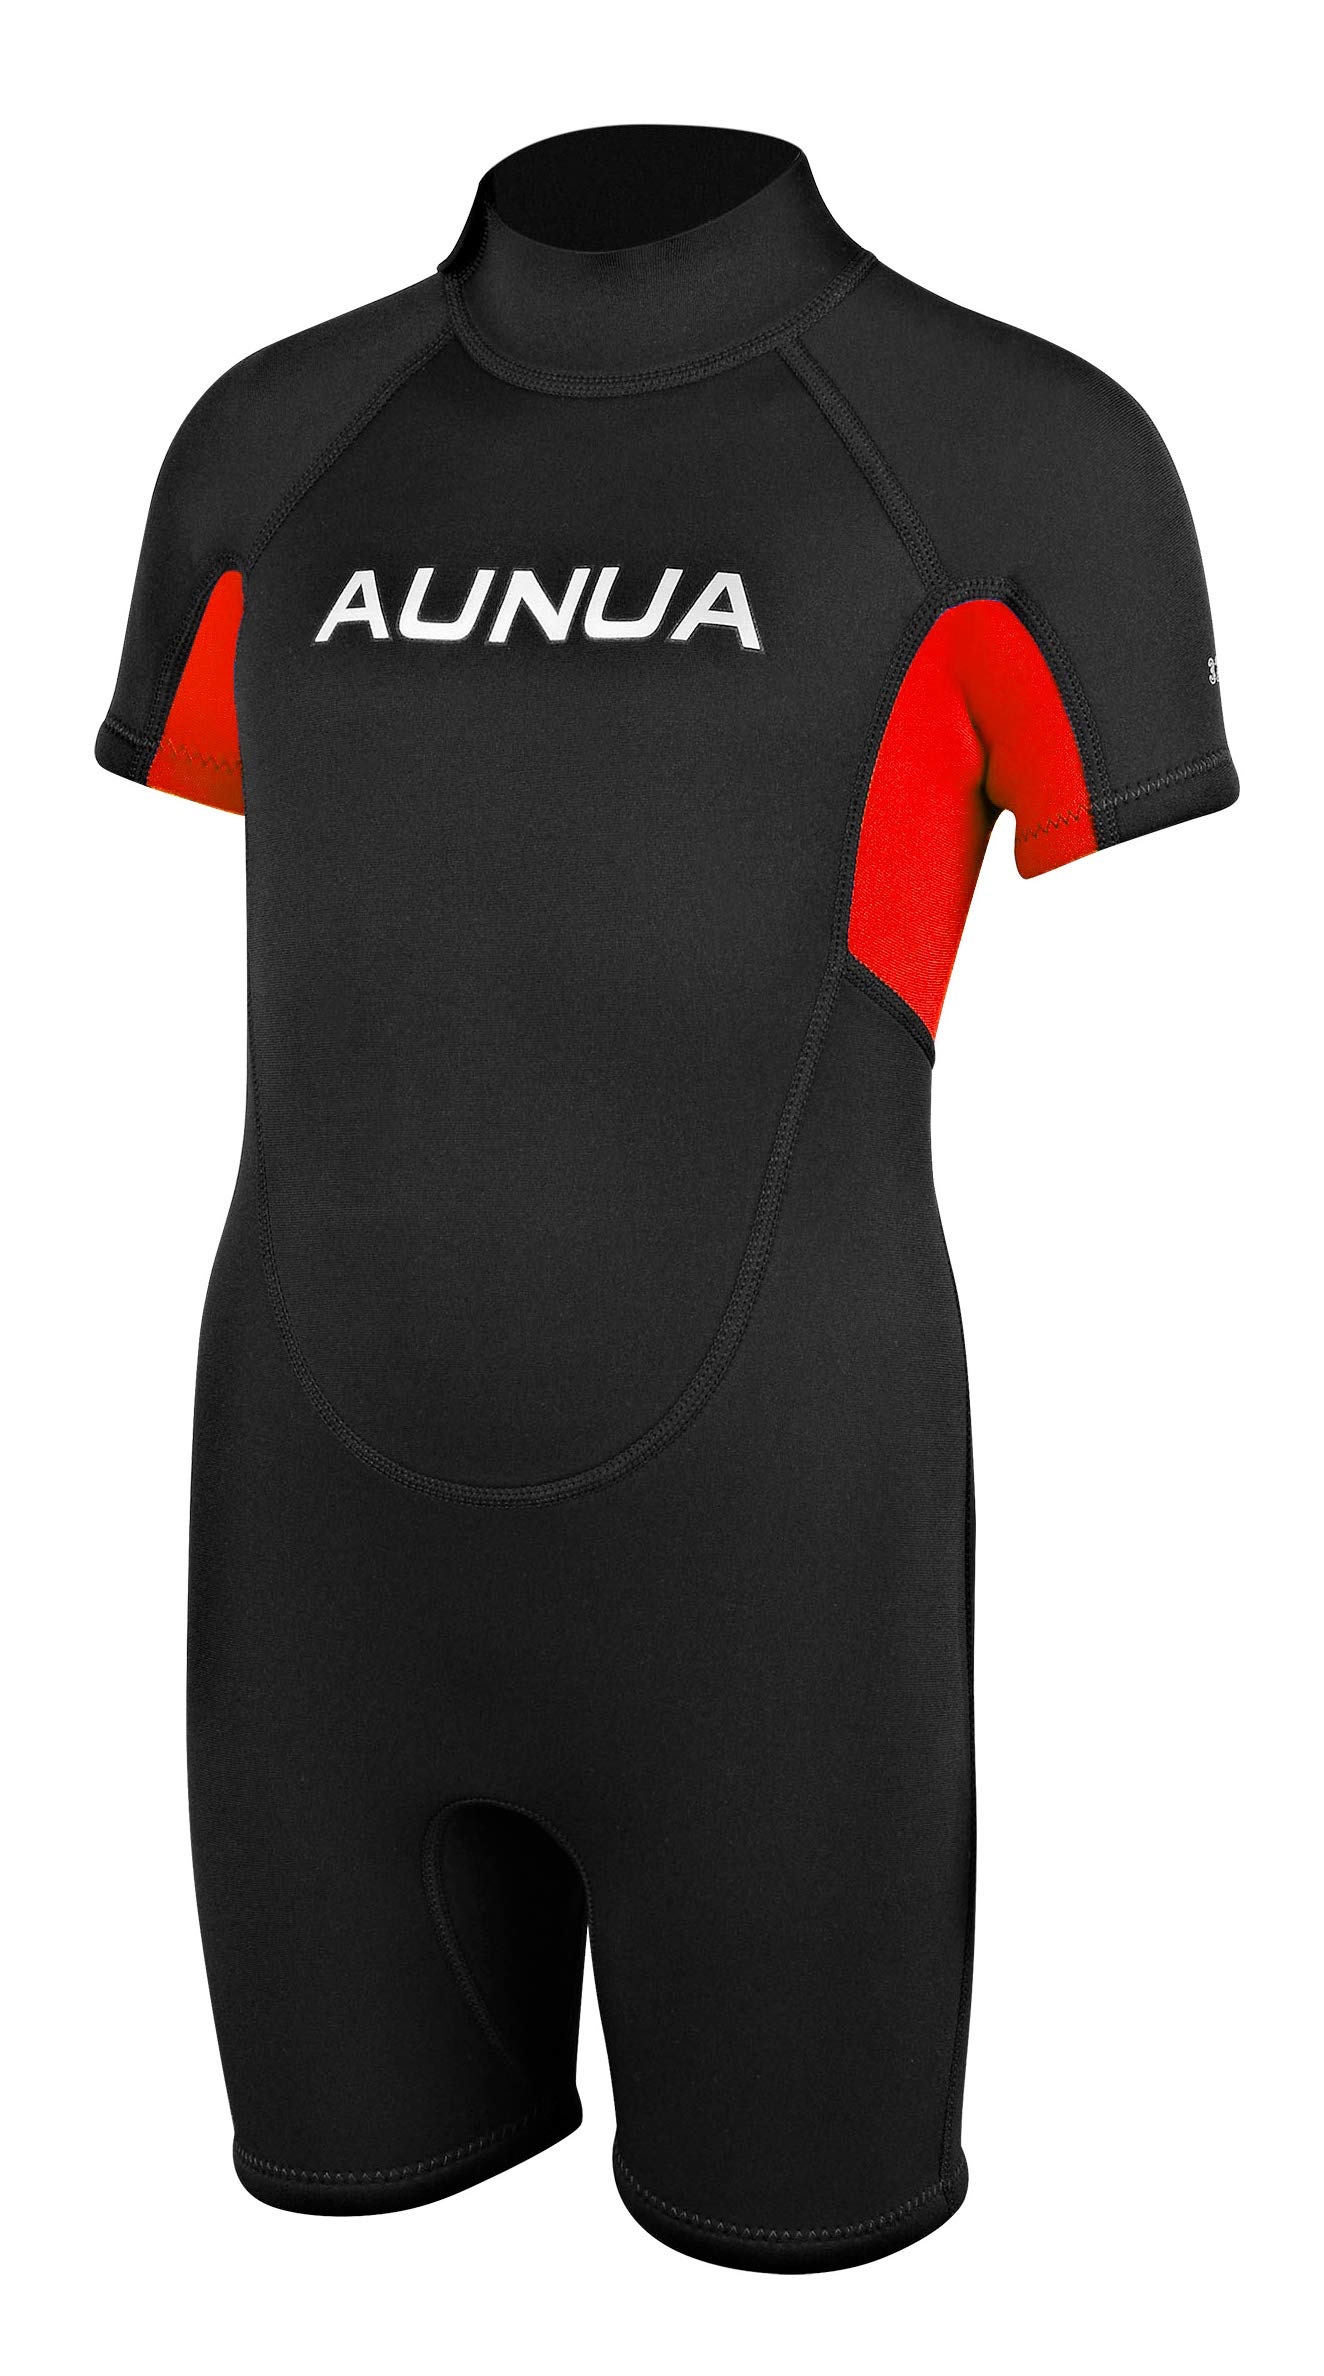 Aunua Children's 3mm Youth Swimming Suit Shorty Wetsuits Neoprene for Kids Keep Warm(7035 BlackRed 4)